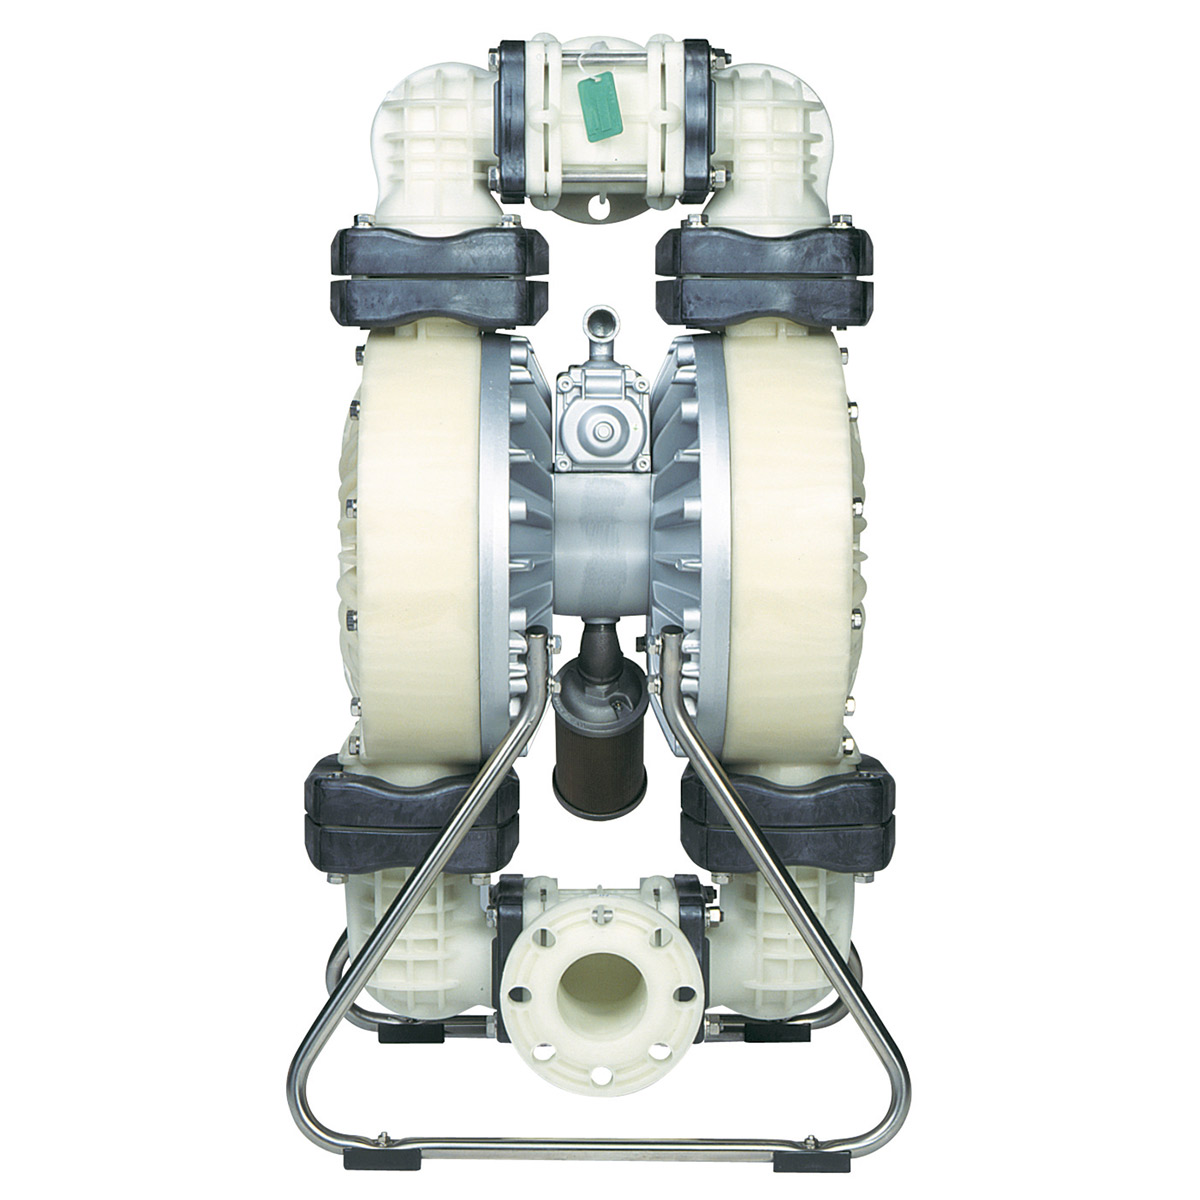 Yamada ndp 80 series 3 inch pumps fast from reliable equipment yamada ndp 80 series 3 inch pumps ccuart Choice Image